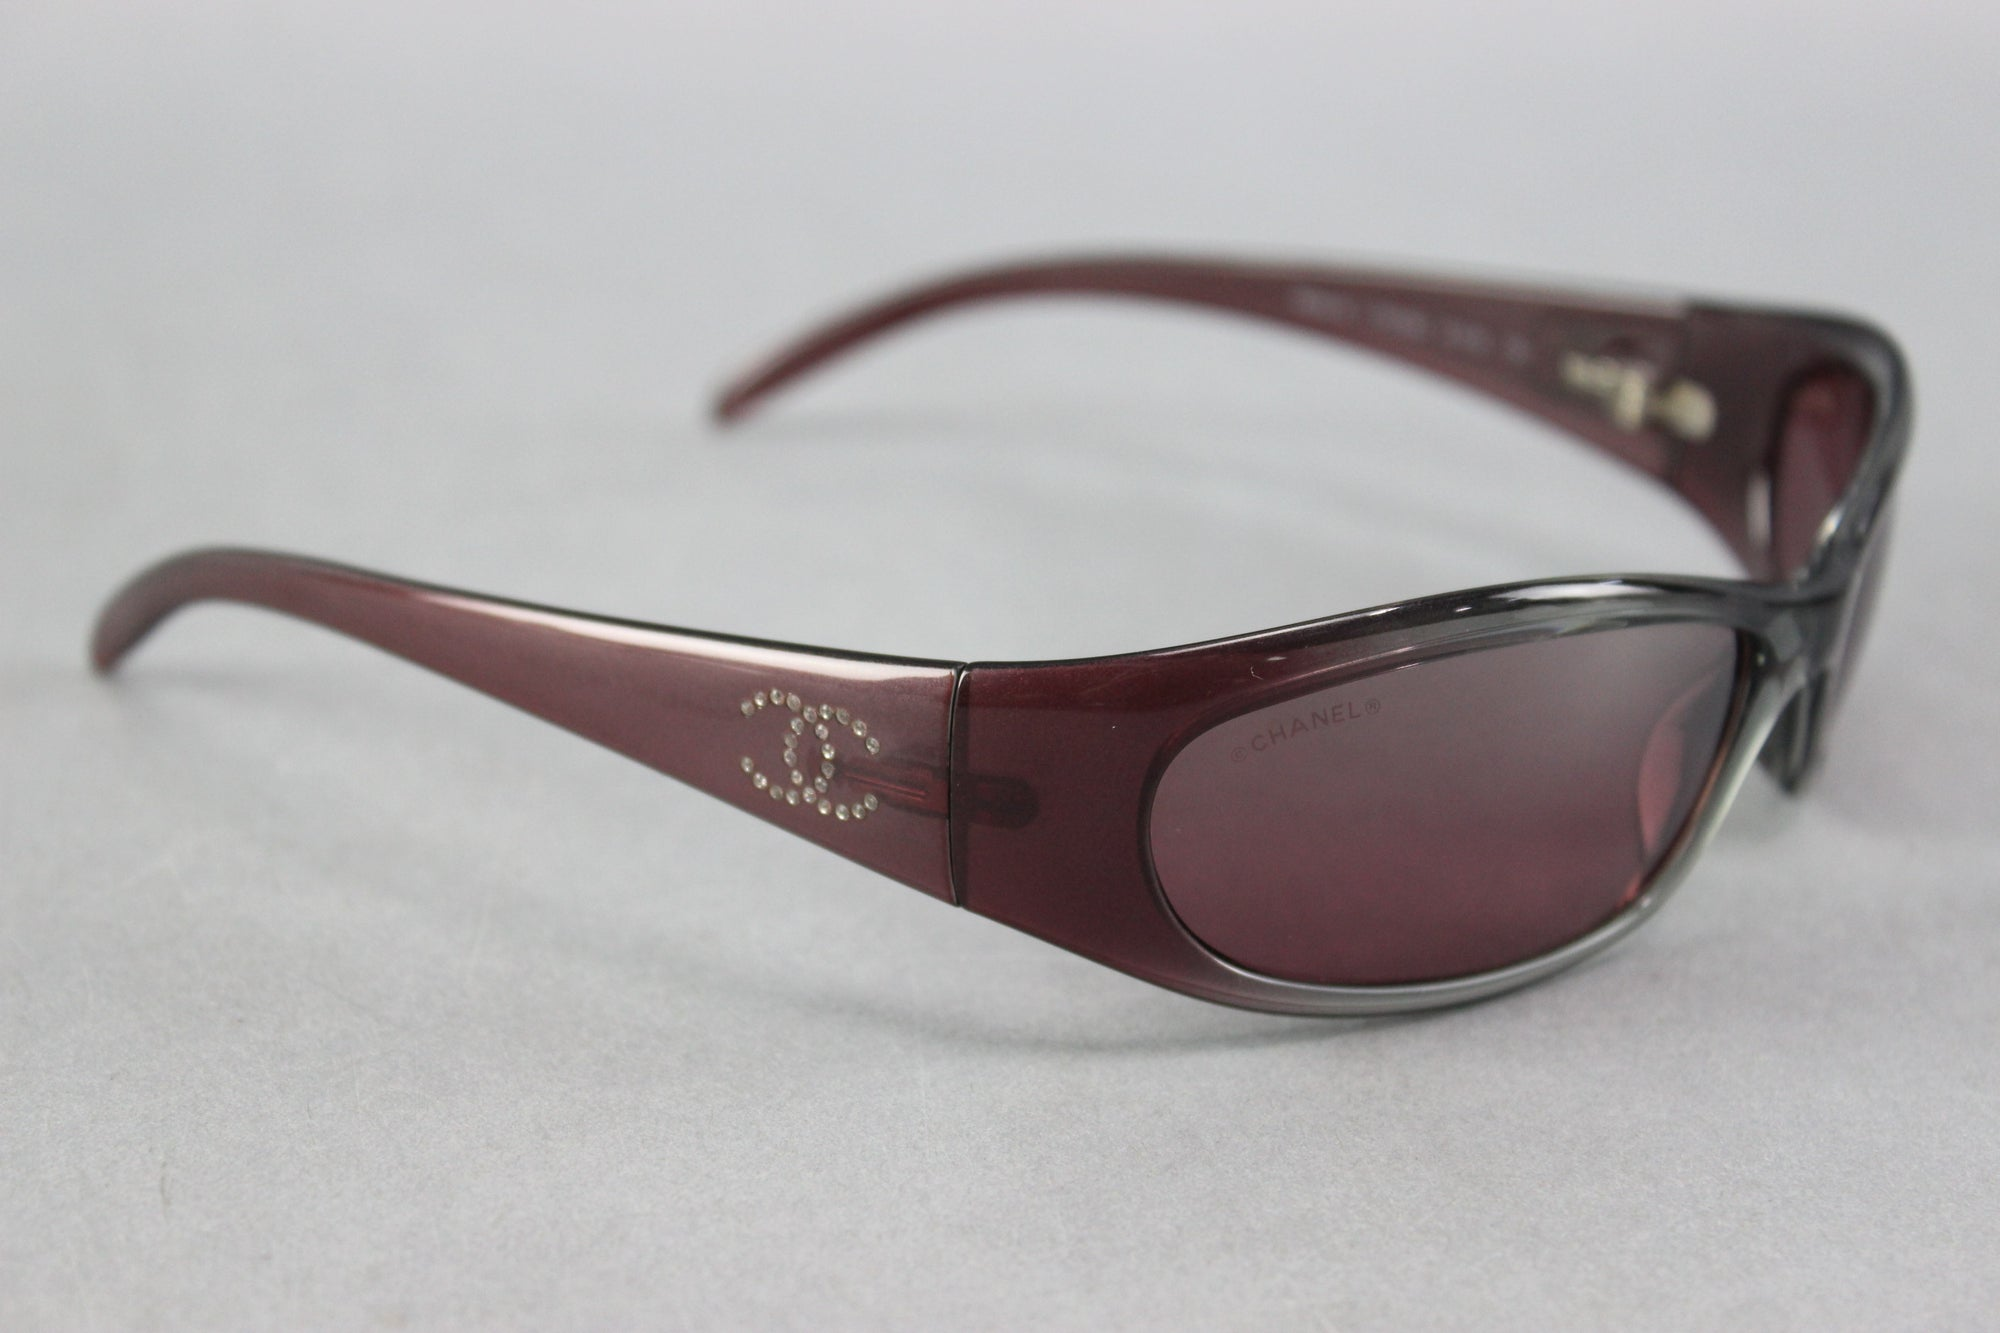 Chanel 6004-B C 702/6A Ladies Dark Gray/Violet Designer Sunglasses W/ Case